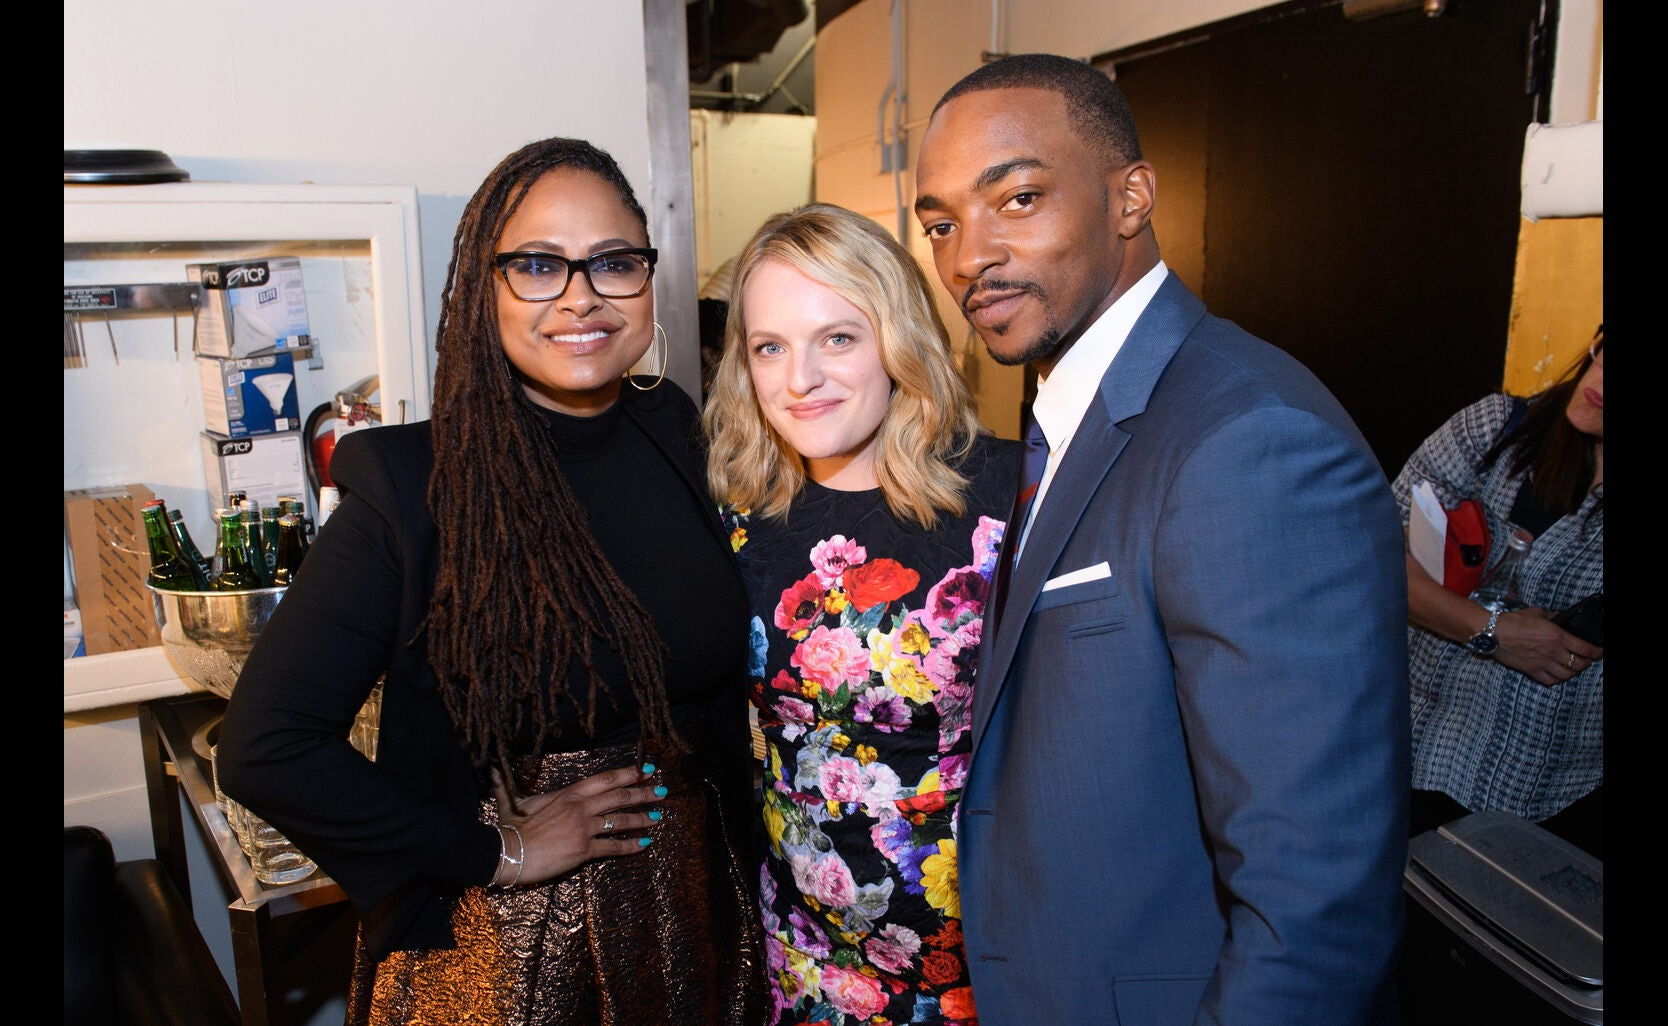 Presenterts Elsiabeth Moss, ANthony Mackie and Ava DuVernay